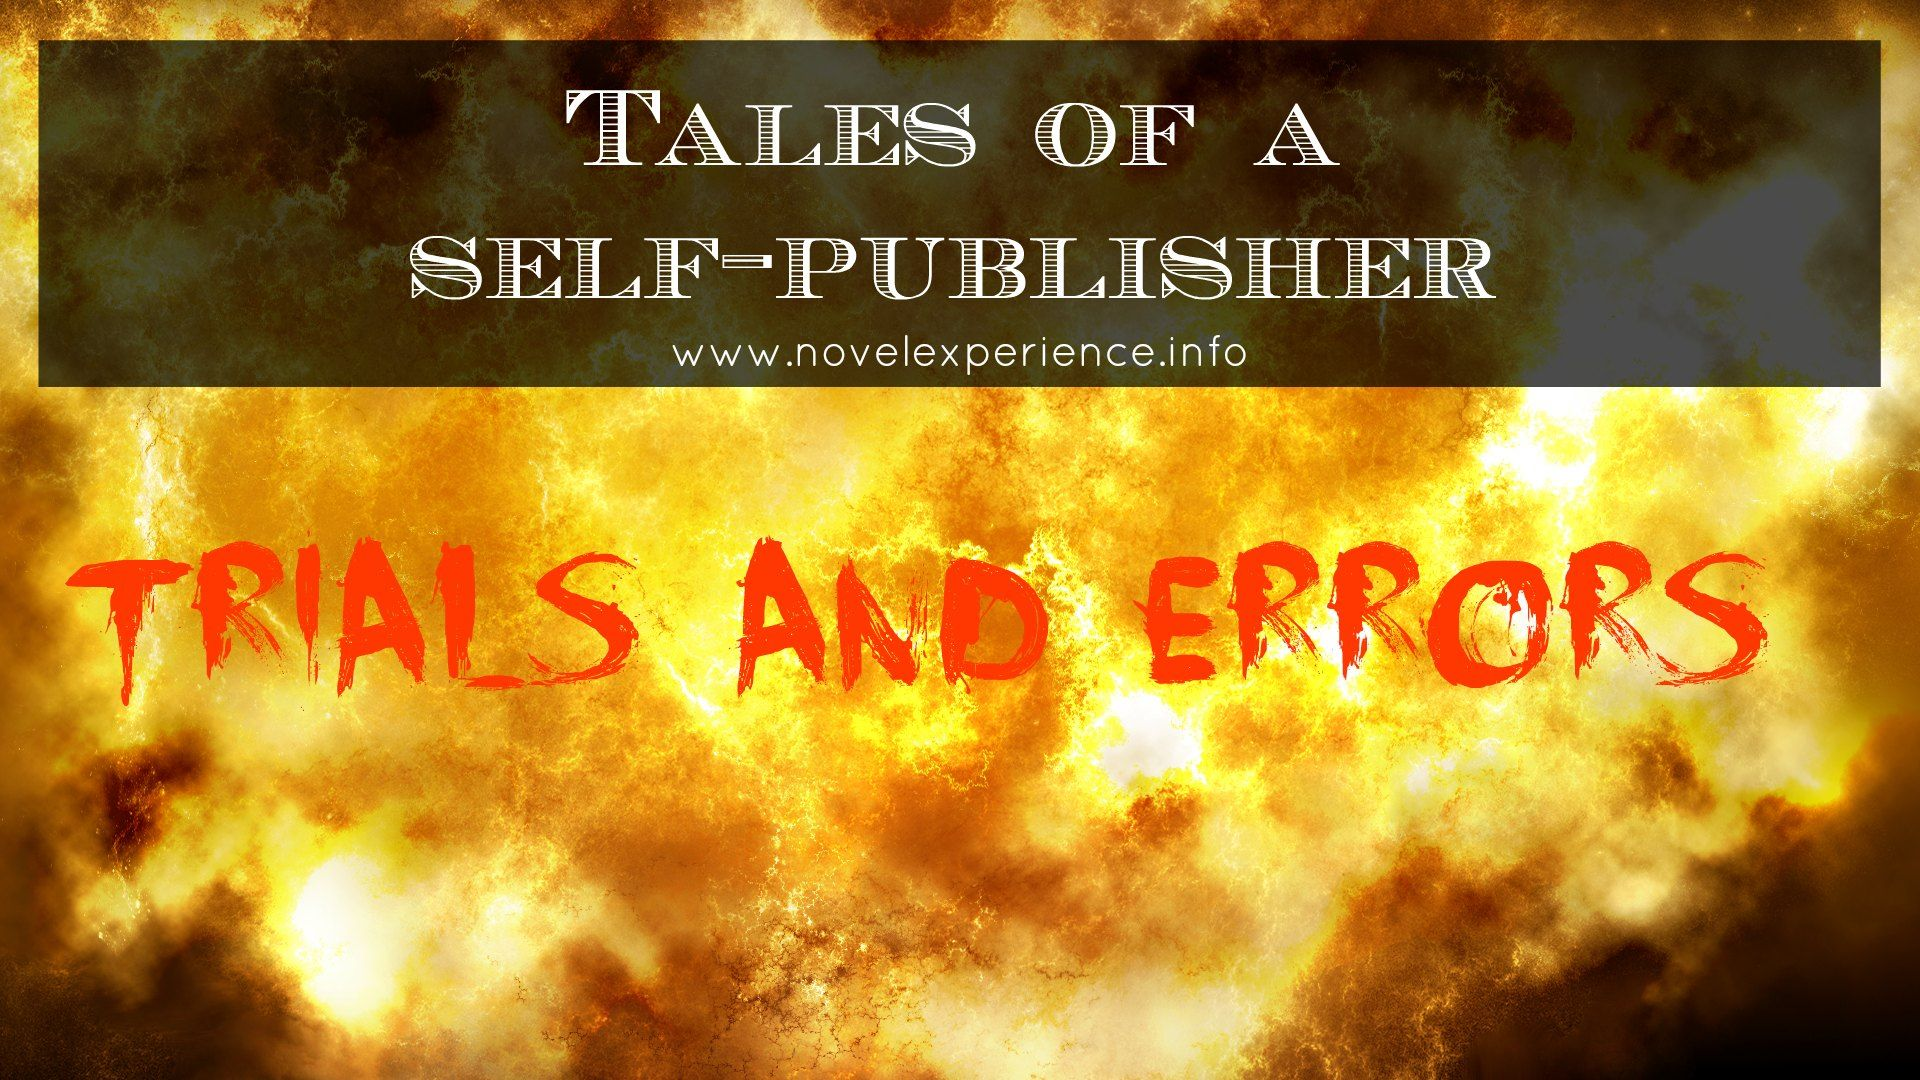 Tales of a Self-publisher - how refreshing to find an author that is willing to share not just the success stories but the failures as well on the road to self-publishing. Check it out - http://house-of-scarabs.tumblr.com/post/46966322177/tales-of-a-self-publisher